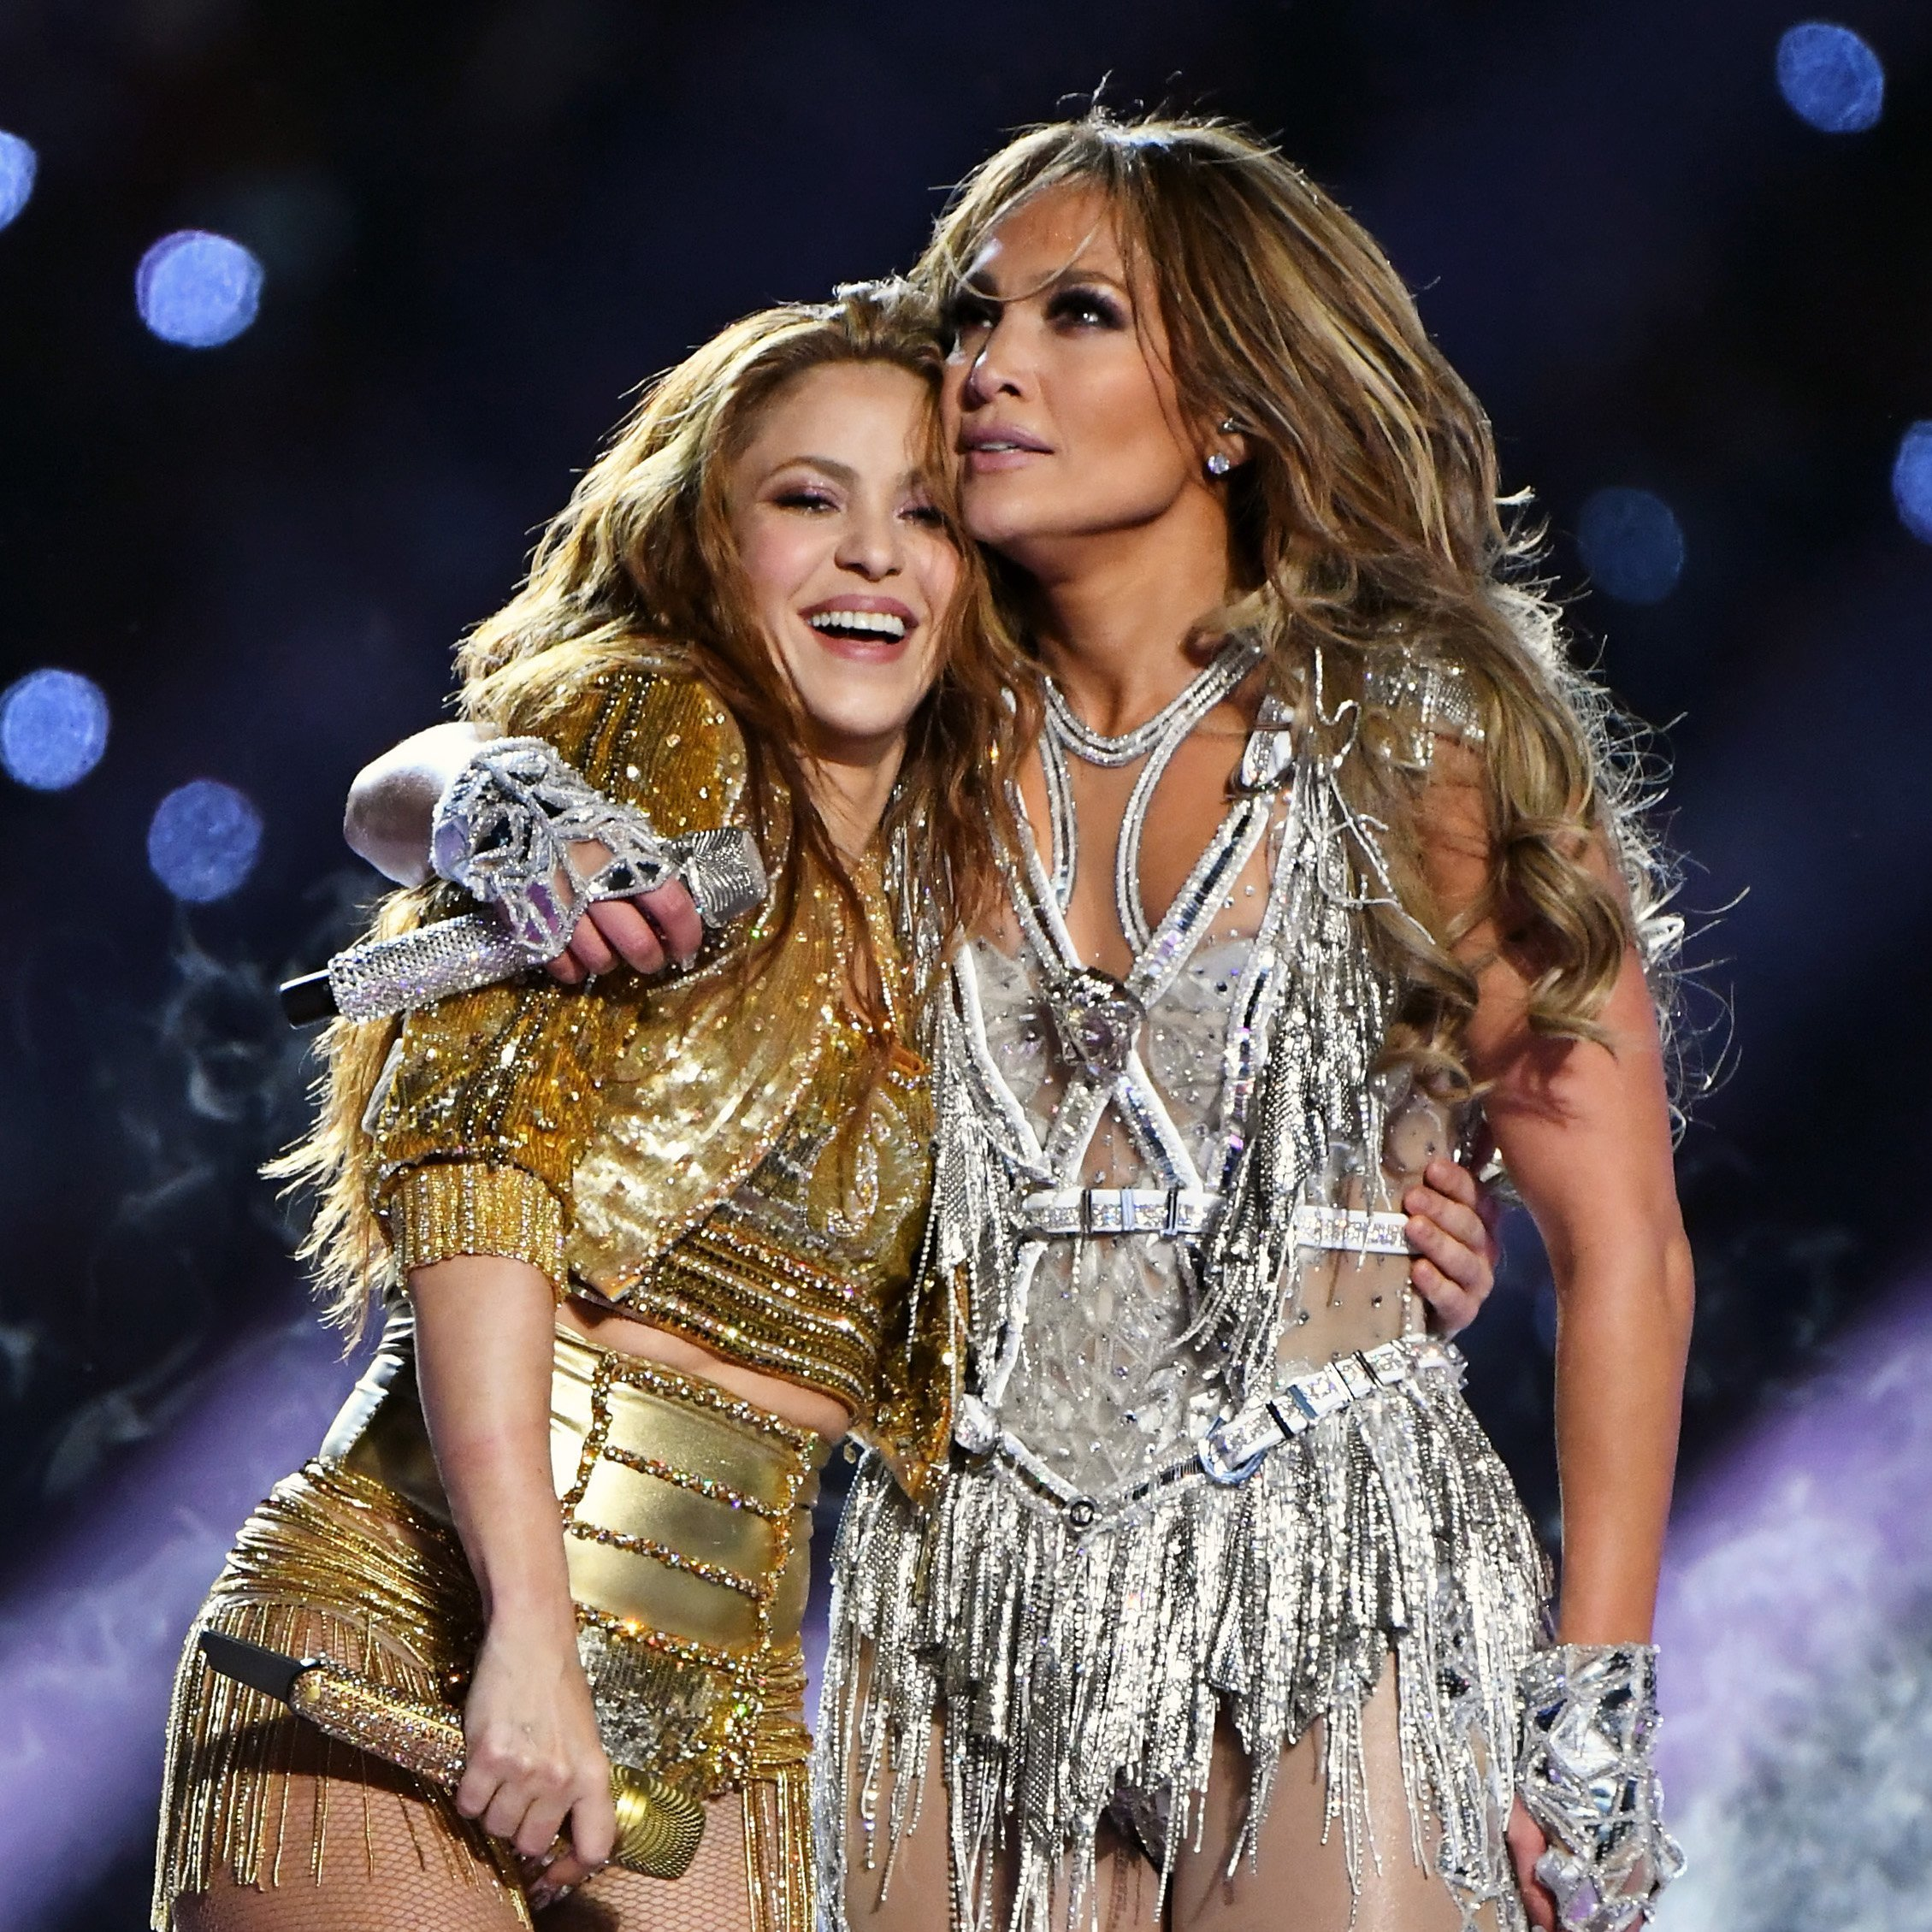 Shakira and Jennifer Lopez perform onstage during the Pepsi Super Bowl LIV Halftime Show at Hard Rock Stadium on February 02, 2020, in Miami, Florida. | Source: Getty Images.